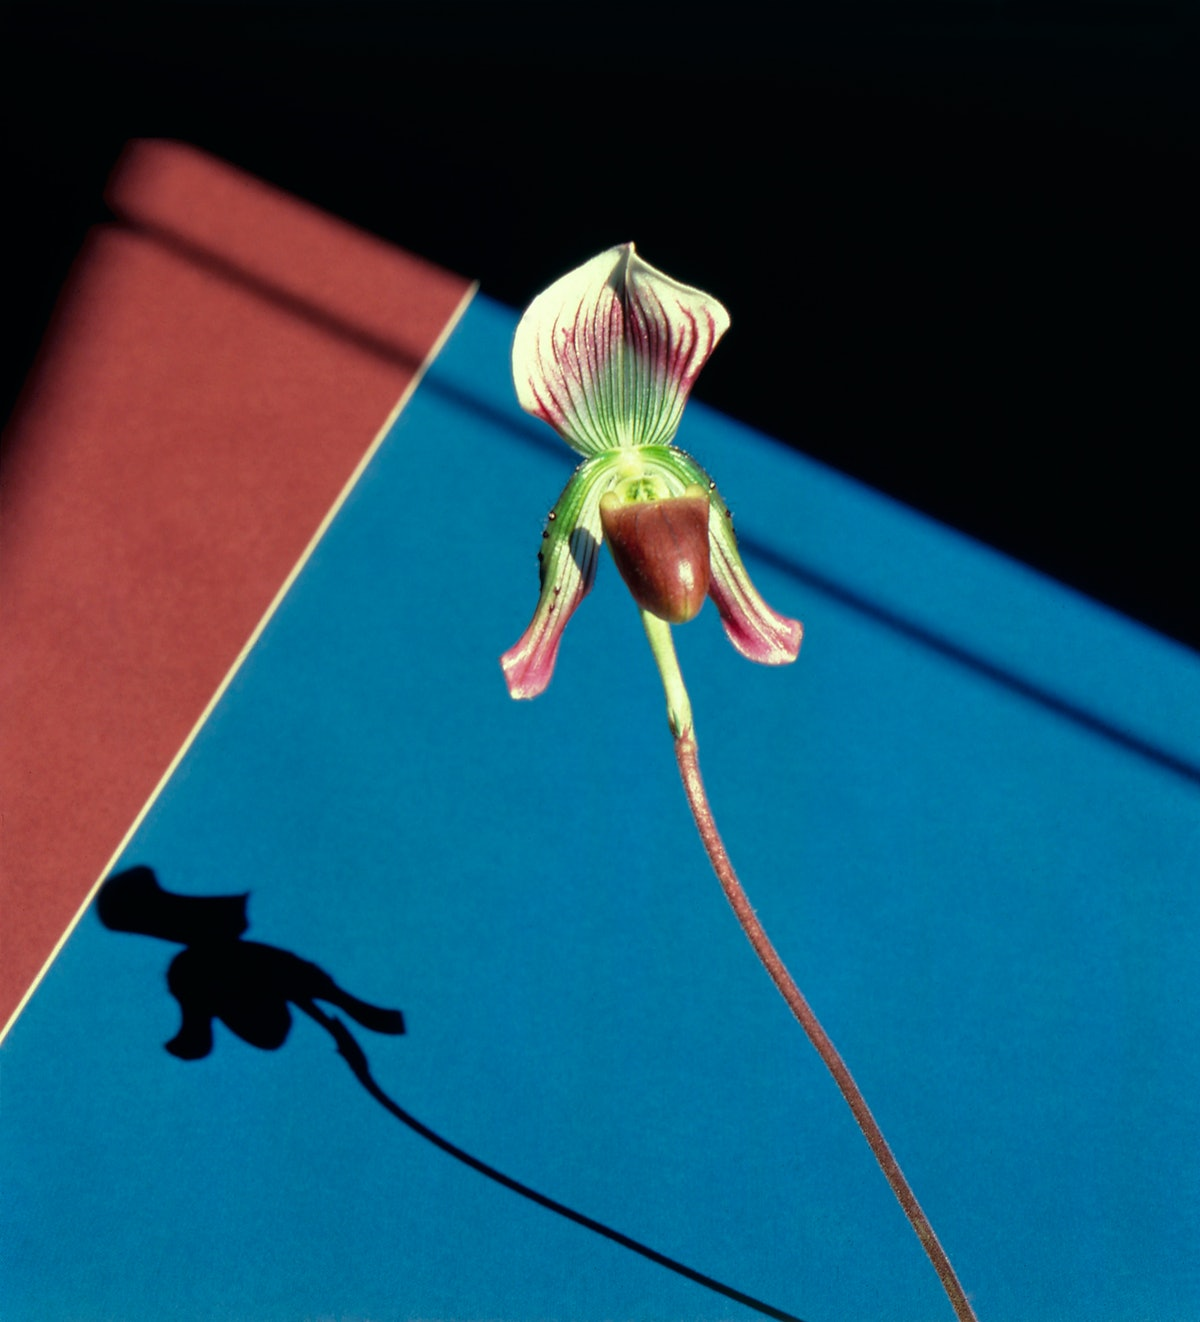 Mapplethorpe's Orchid